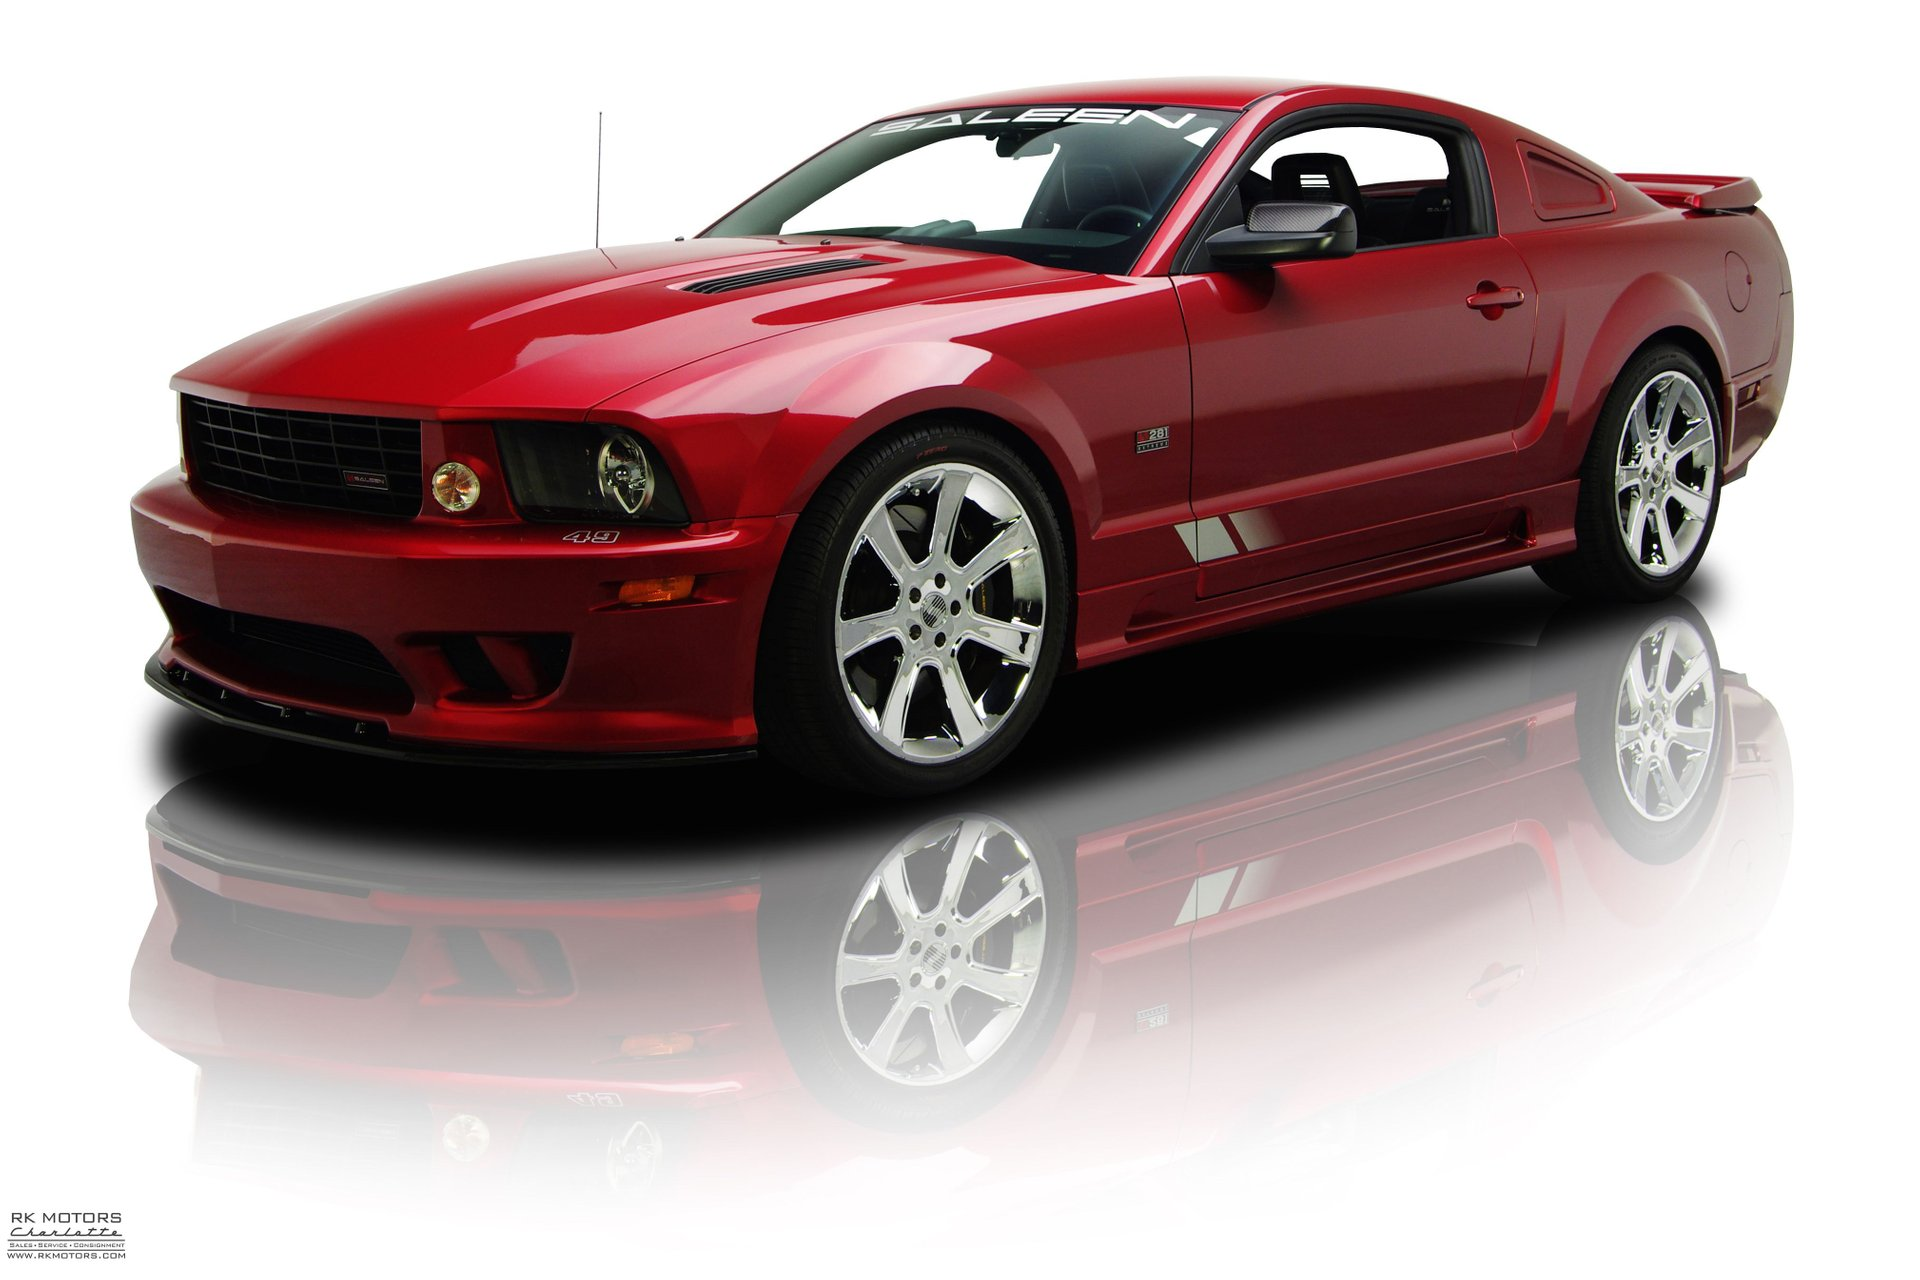 134181 2006 Ford Mustang RK Motors Classic Cars for Sale